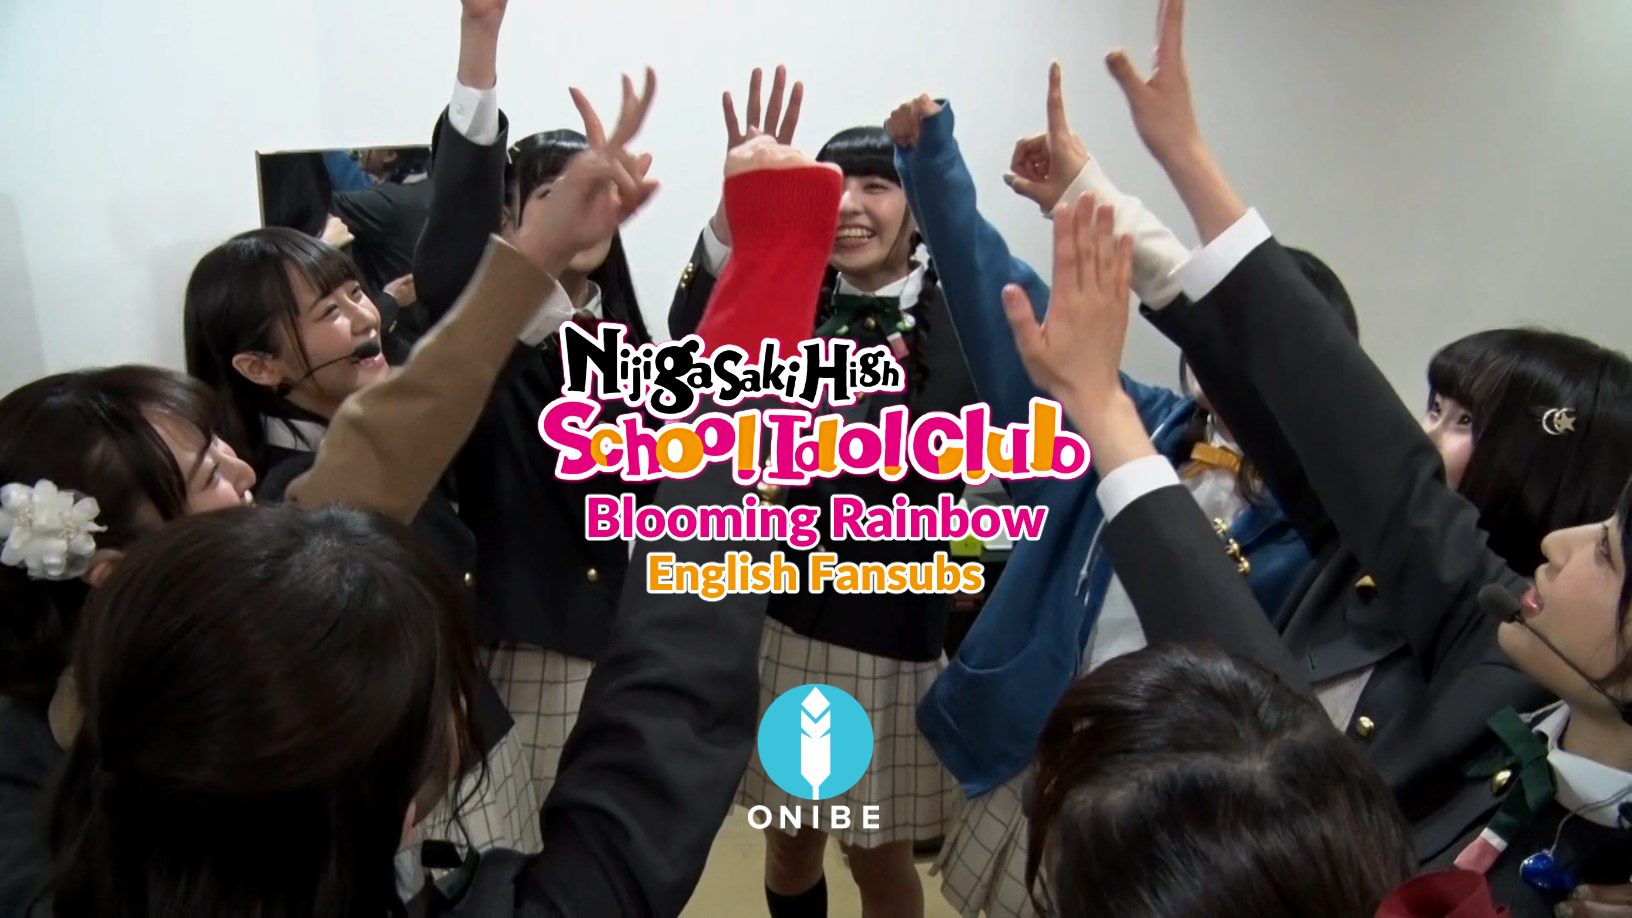 [Team ONIBE] Love Live! Nijigasaki High School Idol Club Memorial Disc ~Blooming Rainbow~